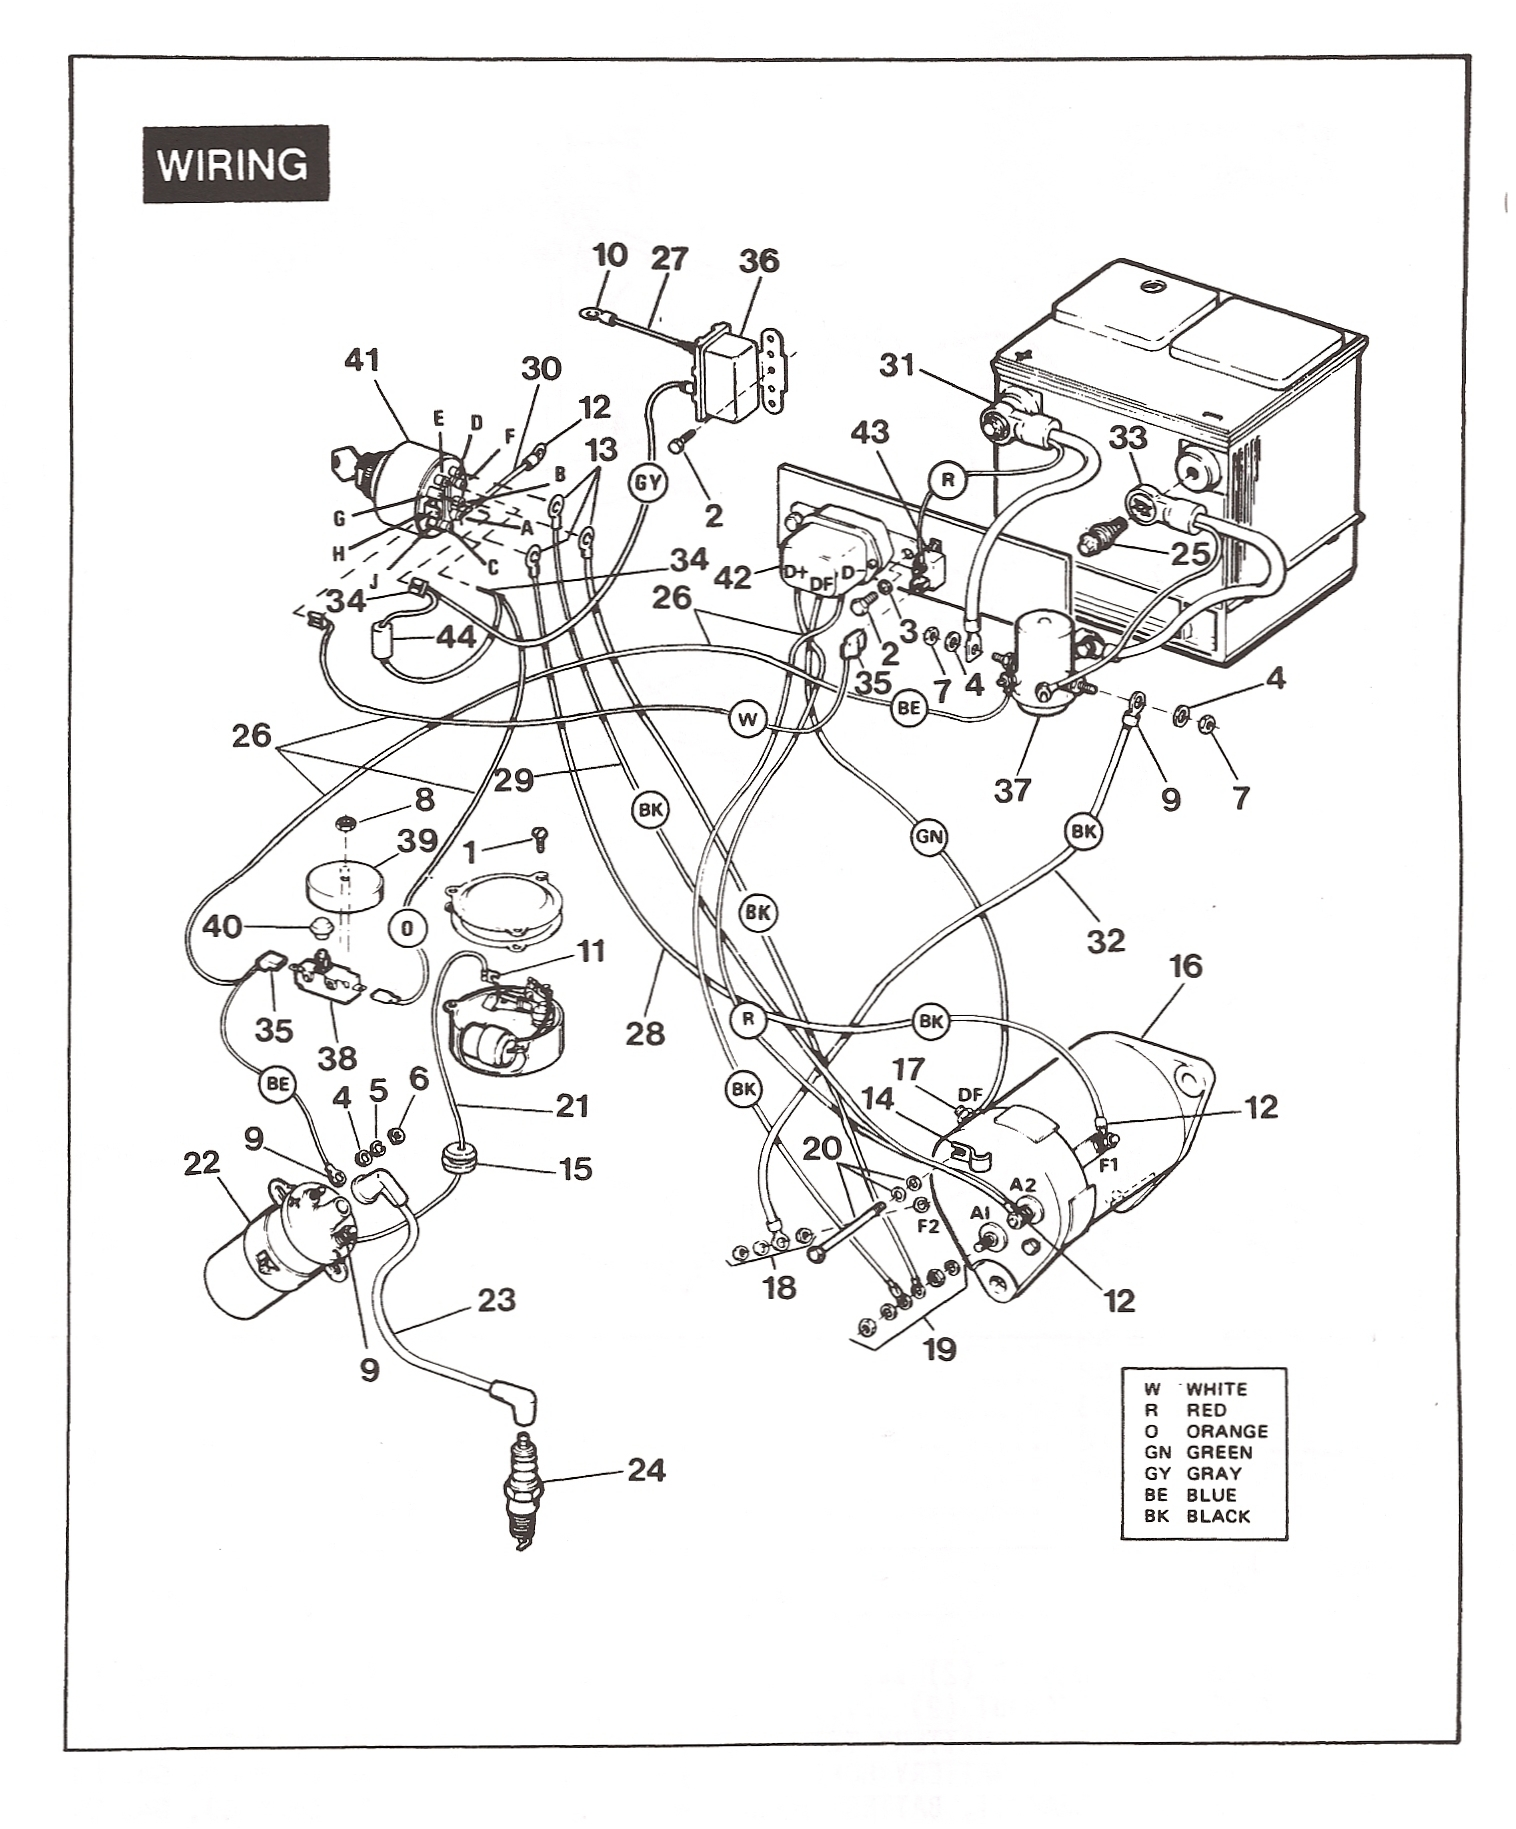 harley ignition switch wiring diagram with 96845 Columbia Par Car Engine Fix Sell Good Crank 2 on Viewtopic further 5879 Wiring Diagrams Online 65 03 A further Basic Electrical Wiring Diagrams tPzkAoilWy3 gRI2gF0PSZwKbxv9bs6TvxtA0bHT470 in addition 282249101622349651 moreover 775917 Need Exploded Parts Diagram 1994 Evo.